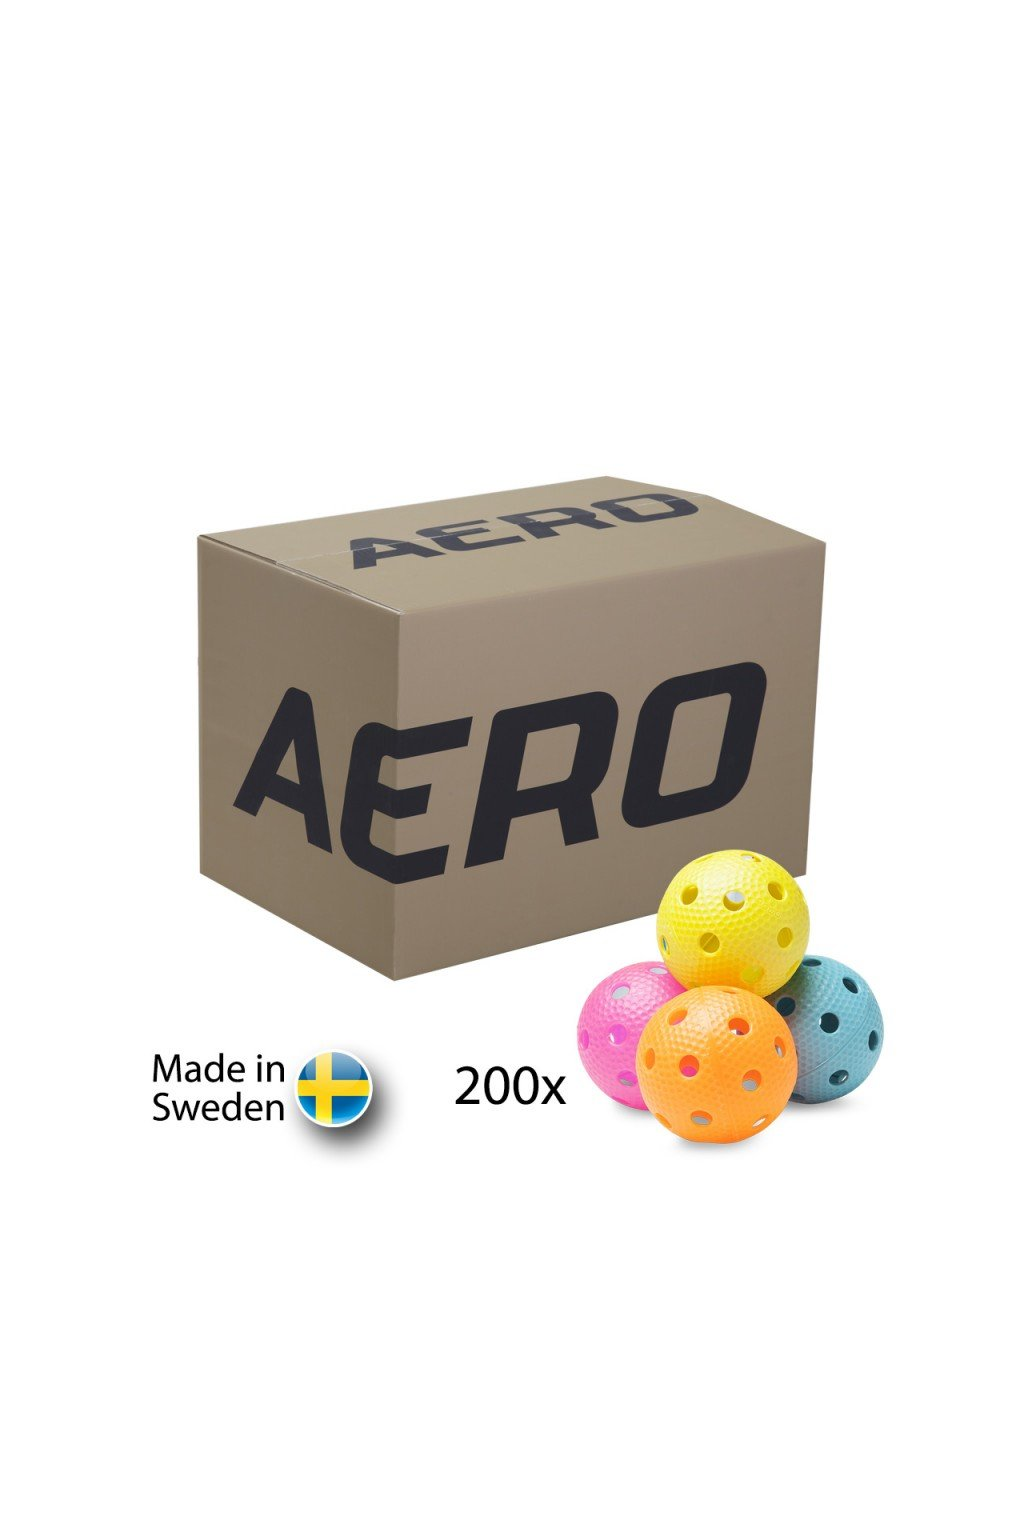 salming aero floorball mixed colours 200 pack